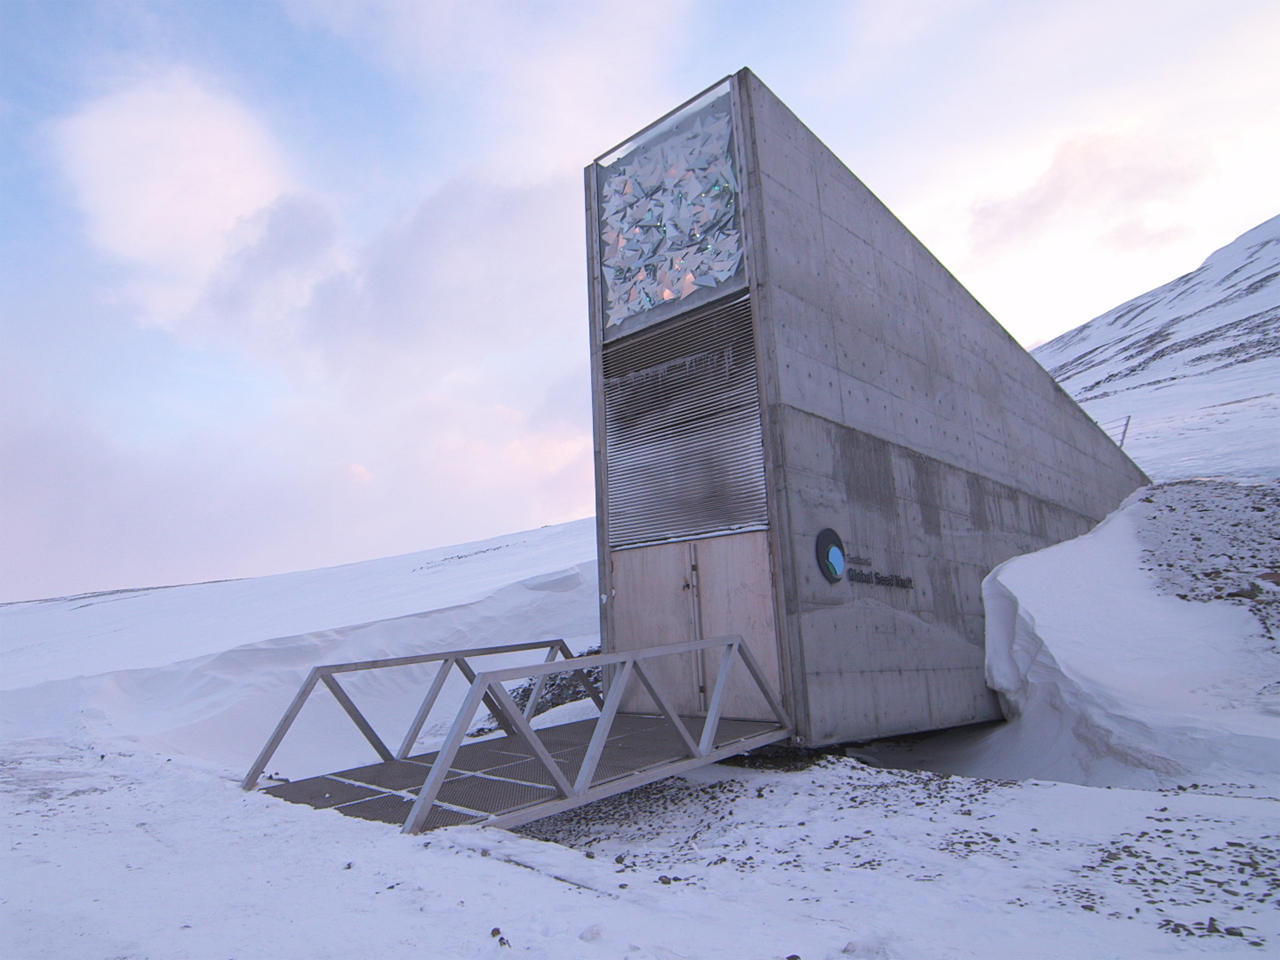 The Doomsday Vault: Humanity's salvation?